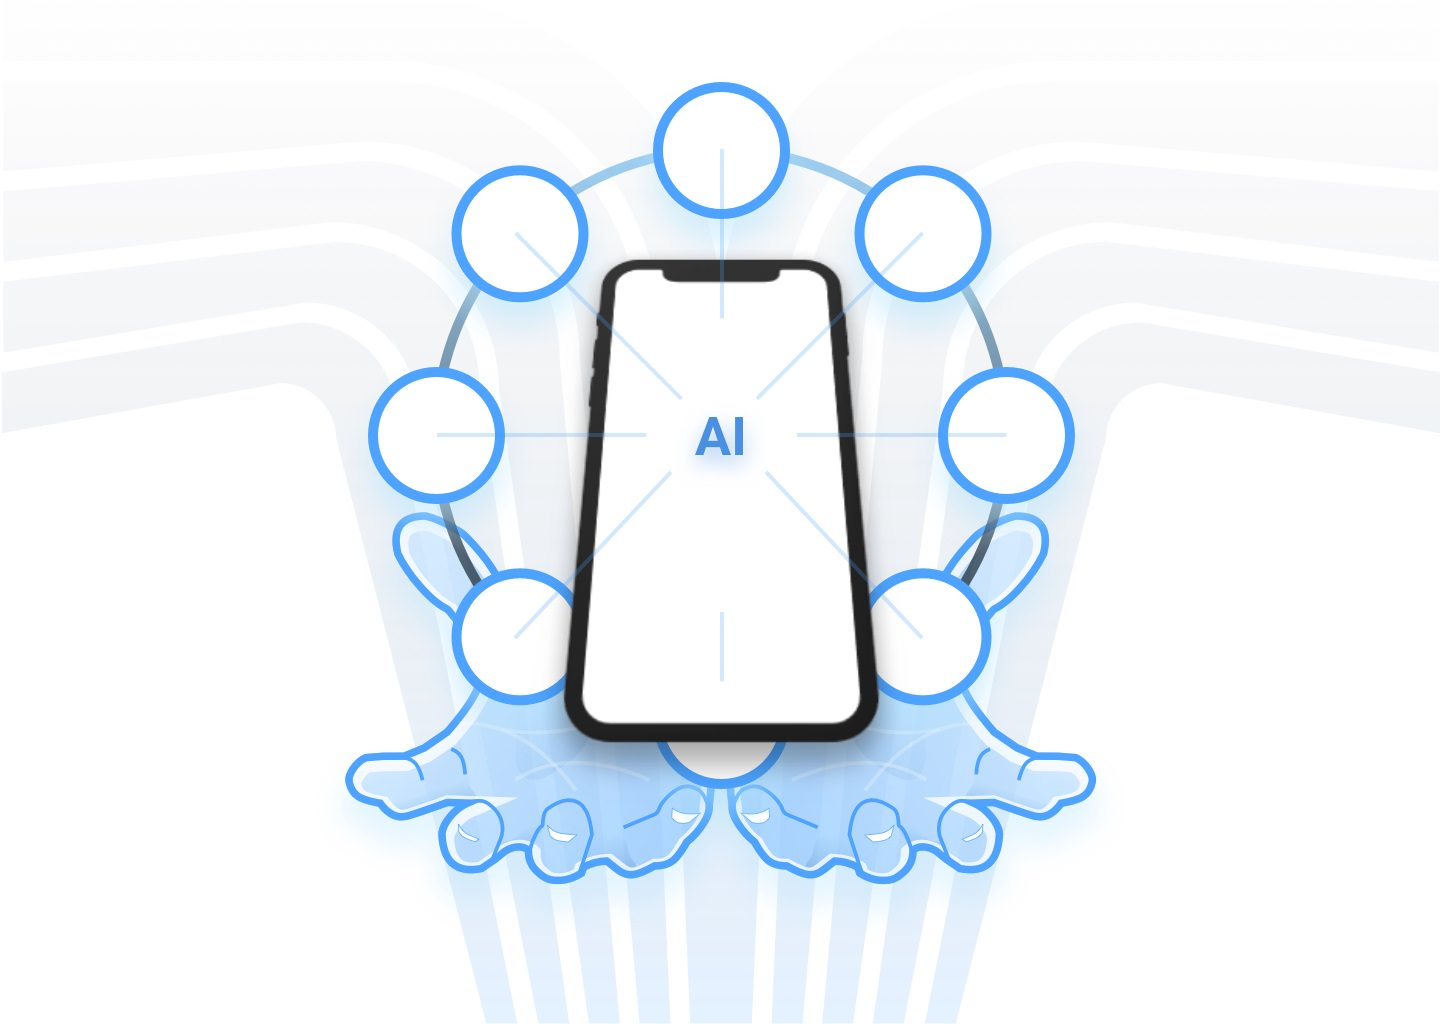 AI Technologies That Can be Used in a Mobile Application pic